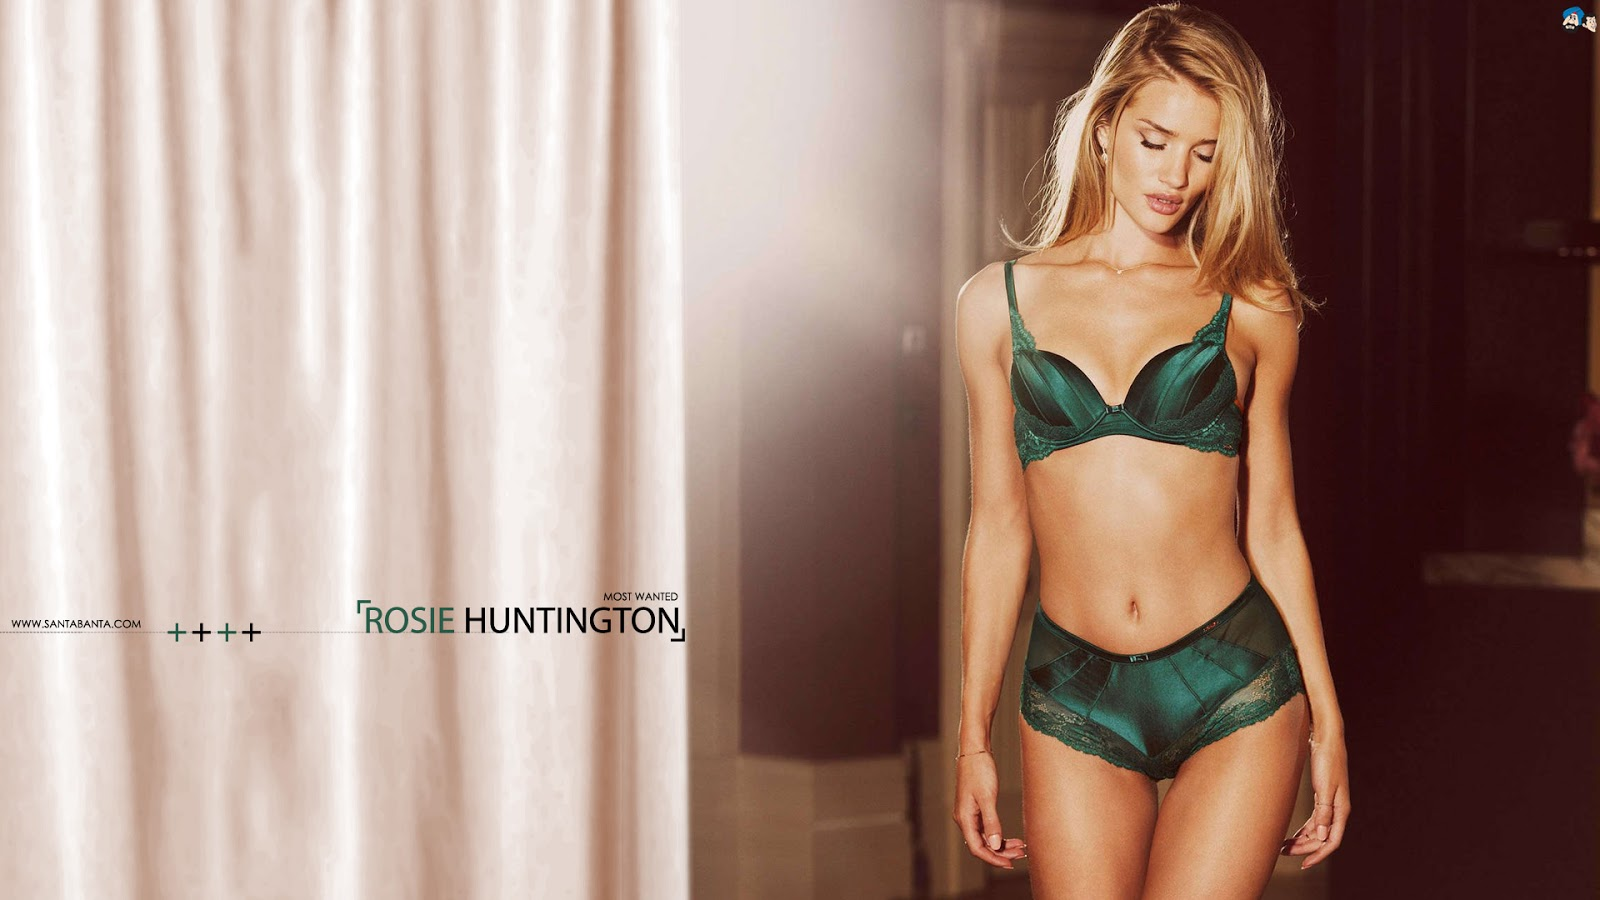 Cute Female Wallpapers Rosie Huntington Whiteley Hd Wallpapers Most Beautiful